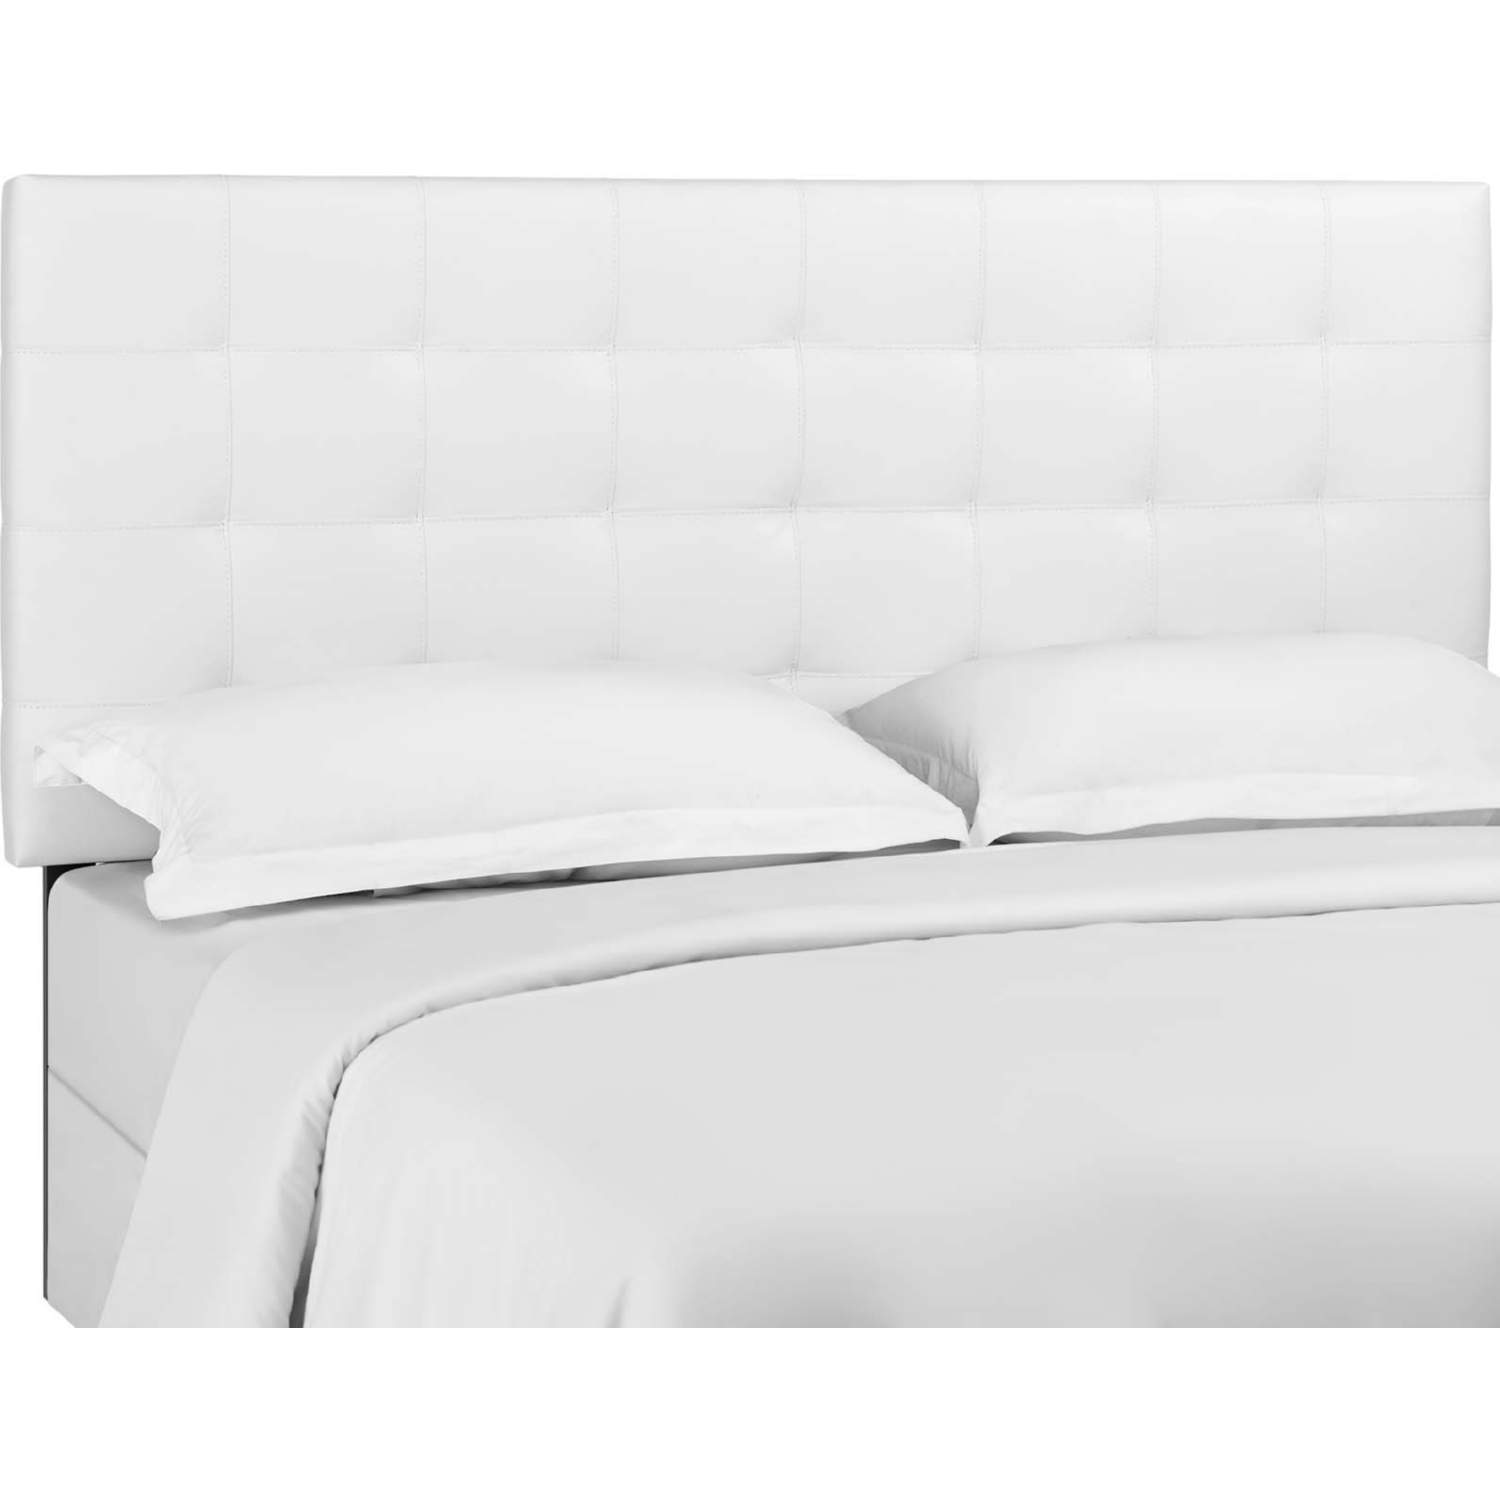 Modway Mod 5848 Whi Paisley Twin Headboard In Tufted White Leatherette